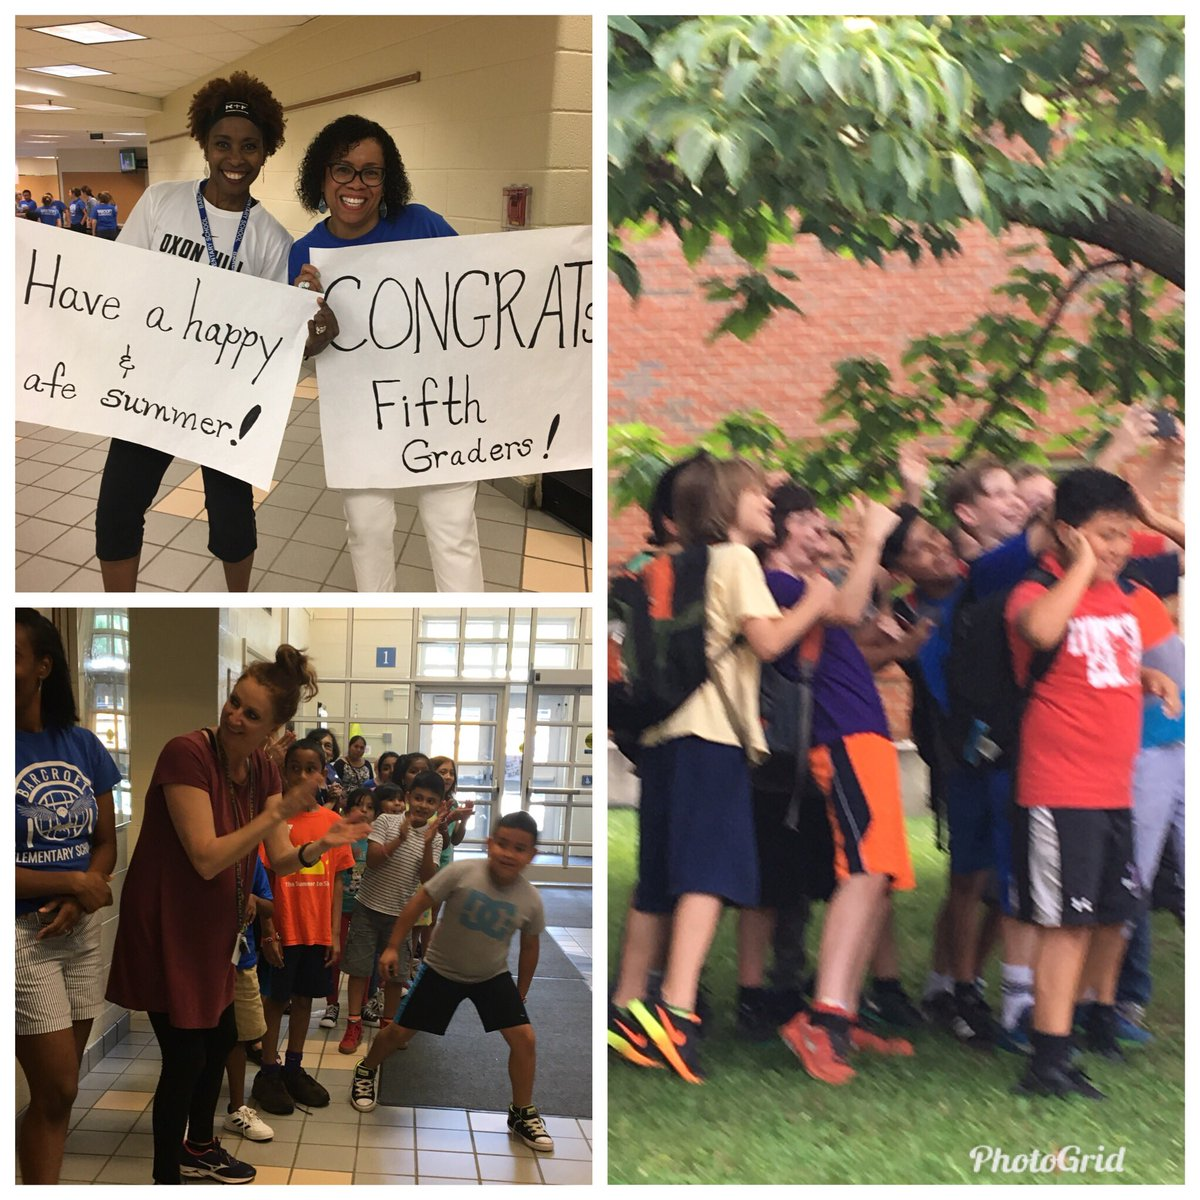 End of another fabulous Barcroft year. We clapped out our rising 6th graders and were surprised by their tears. I guess they will miss us. ⁦<a target='_blank' href='http://twitter.com/APSVirginia'>@APSVirginia</a>⁩ ⁦<a target='_blank' href='http://twitter.com/BiBaChat'>@BiBaChat</a>⁩ ⁦<a target='_blank' href='http://twitter.com/teachnpe'>@teachnpe</a>⁩ ⁦<a target='_blank' href='http://twitter.com/ddcoggins'>@ddcoggins</a>⁩ ⁦<a target='_blank' href='http://twitter.com/MsBouton'>@MsBouton</a>⁩ ⁦<a target='_blank' href='http://twitter.com/KiaKinsler'>@KiaKinsler</a>⁩ <a target='_blank' href='https://t.co/17NtC7dyEP'>https://t.co/17NtC7dyEP</a>